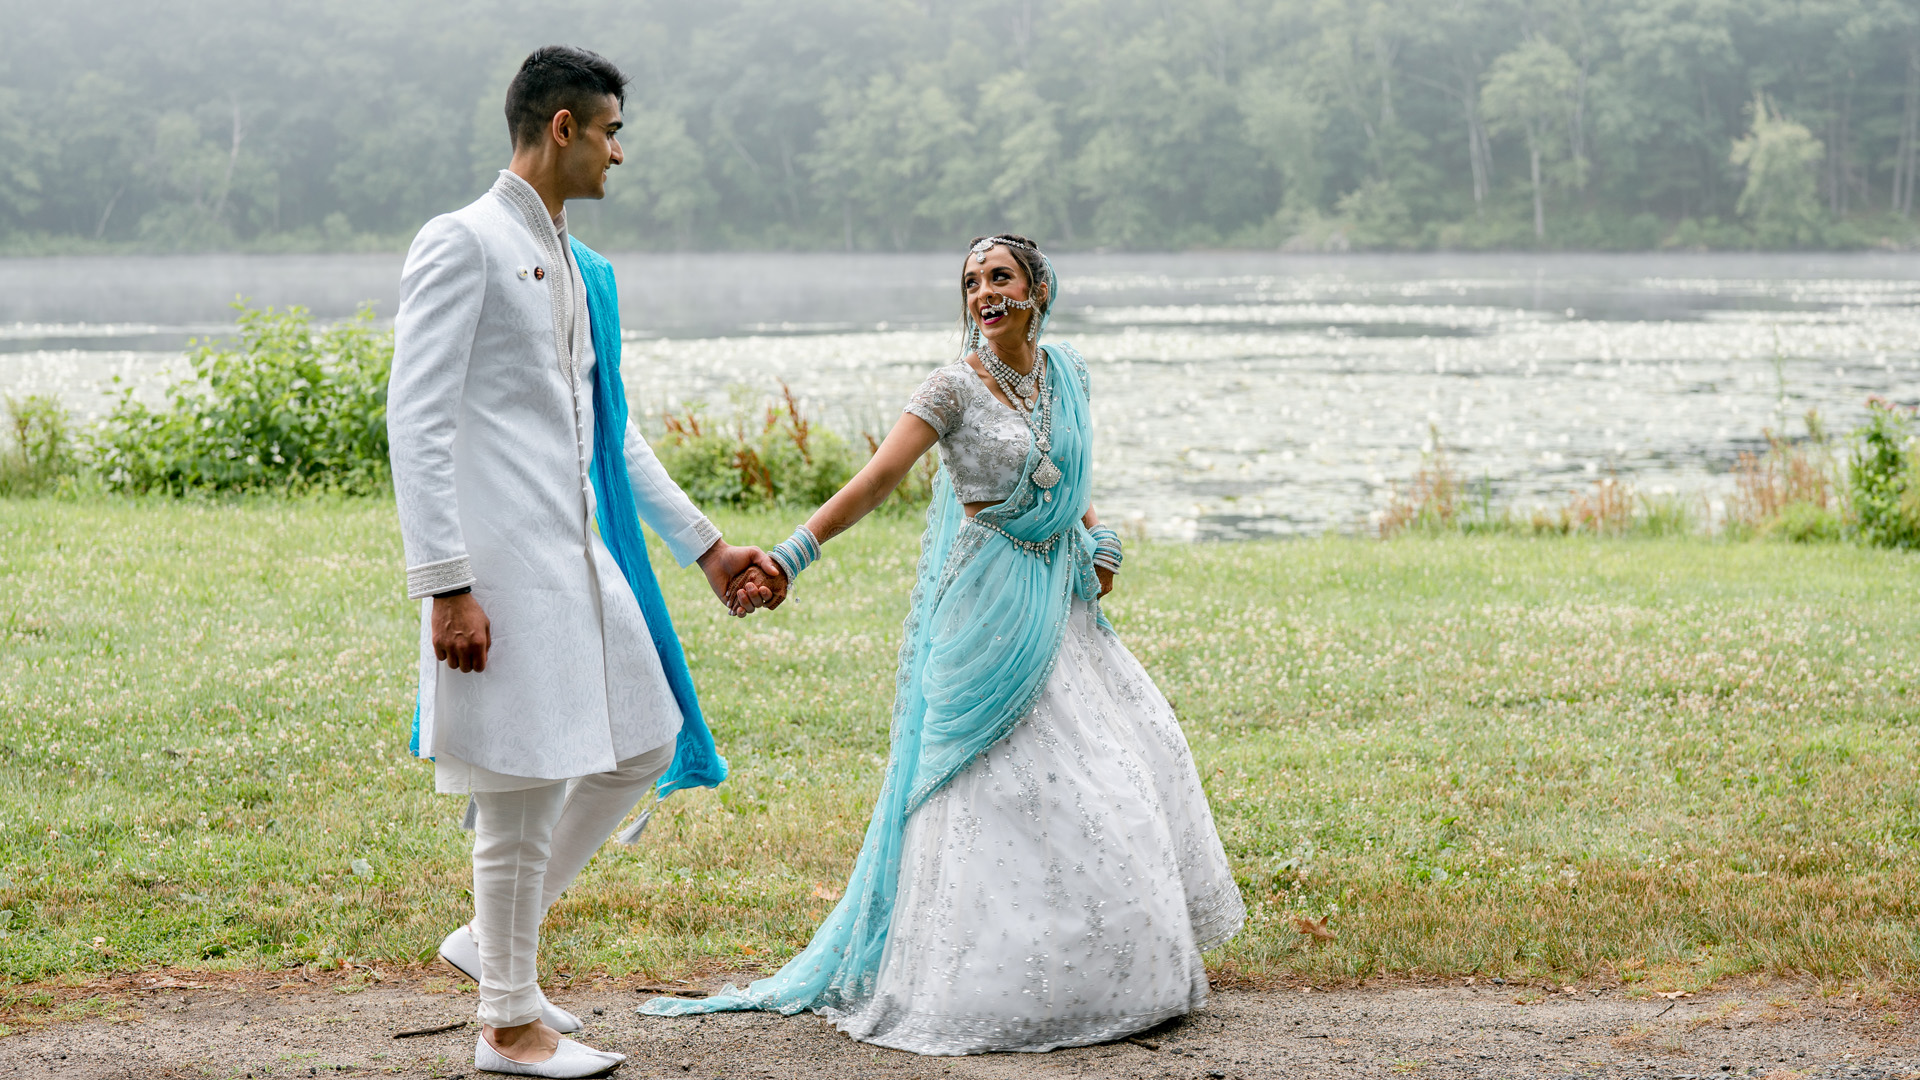 Prerana + Ronak | Devens, Massachusetts | Devens Common Center